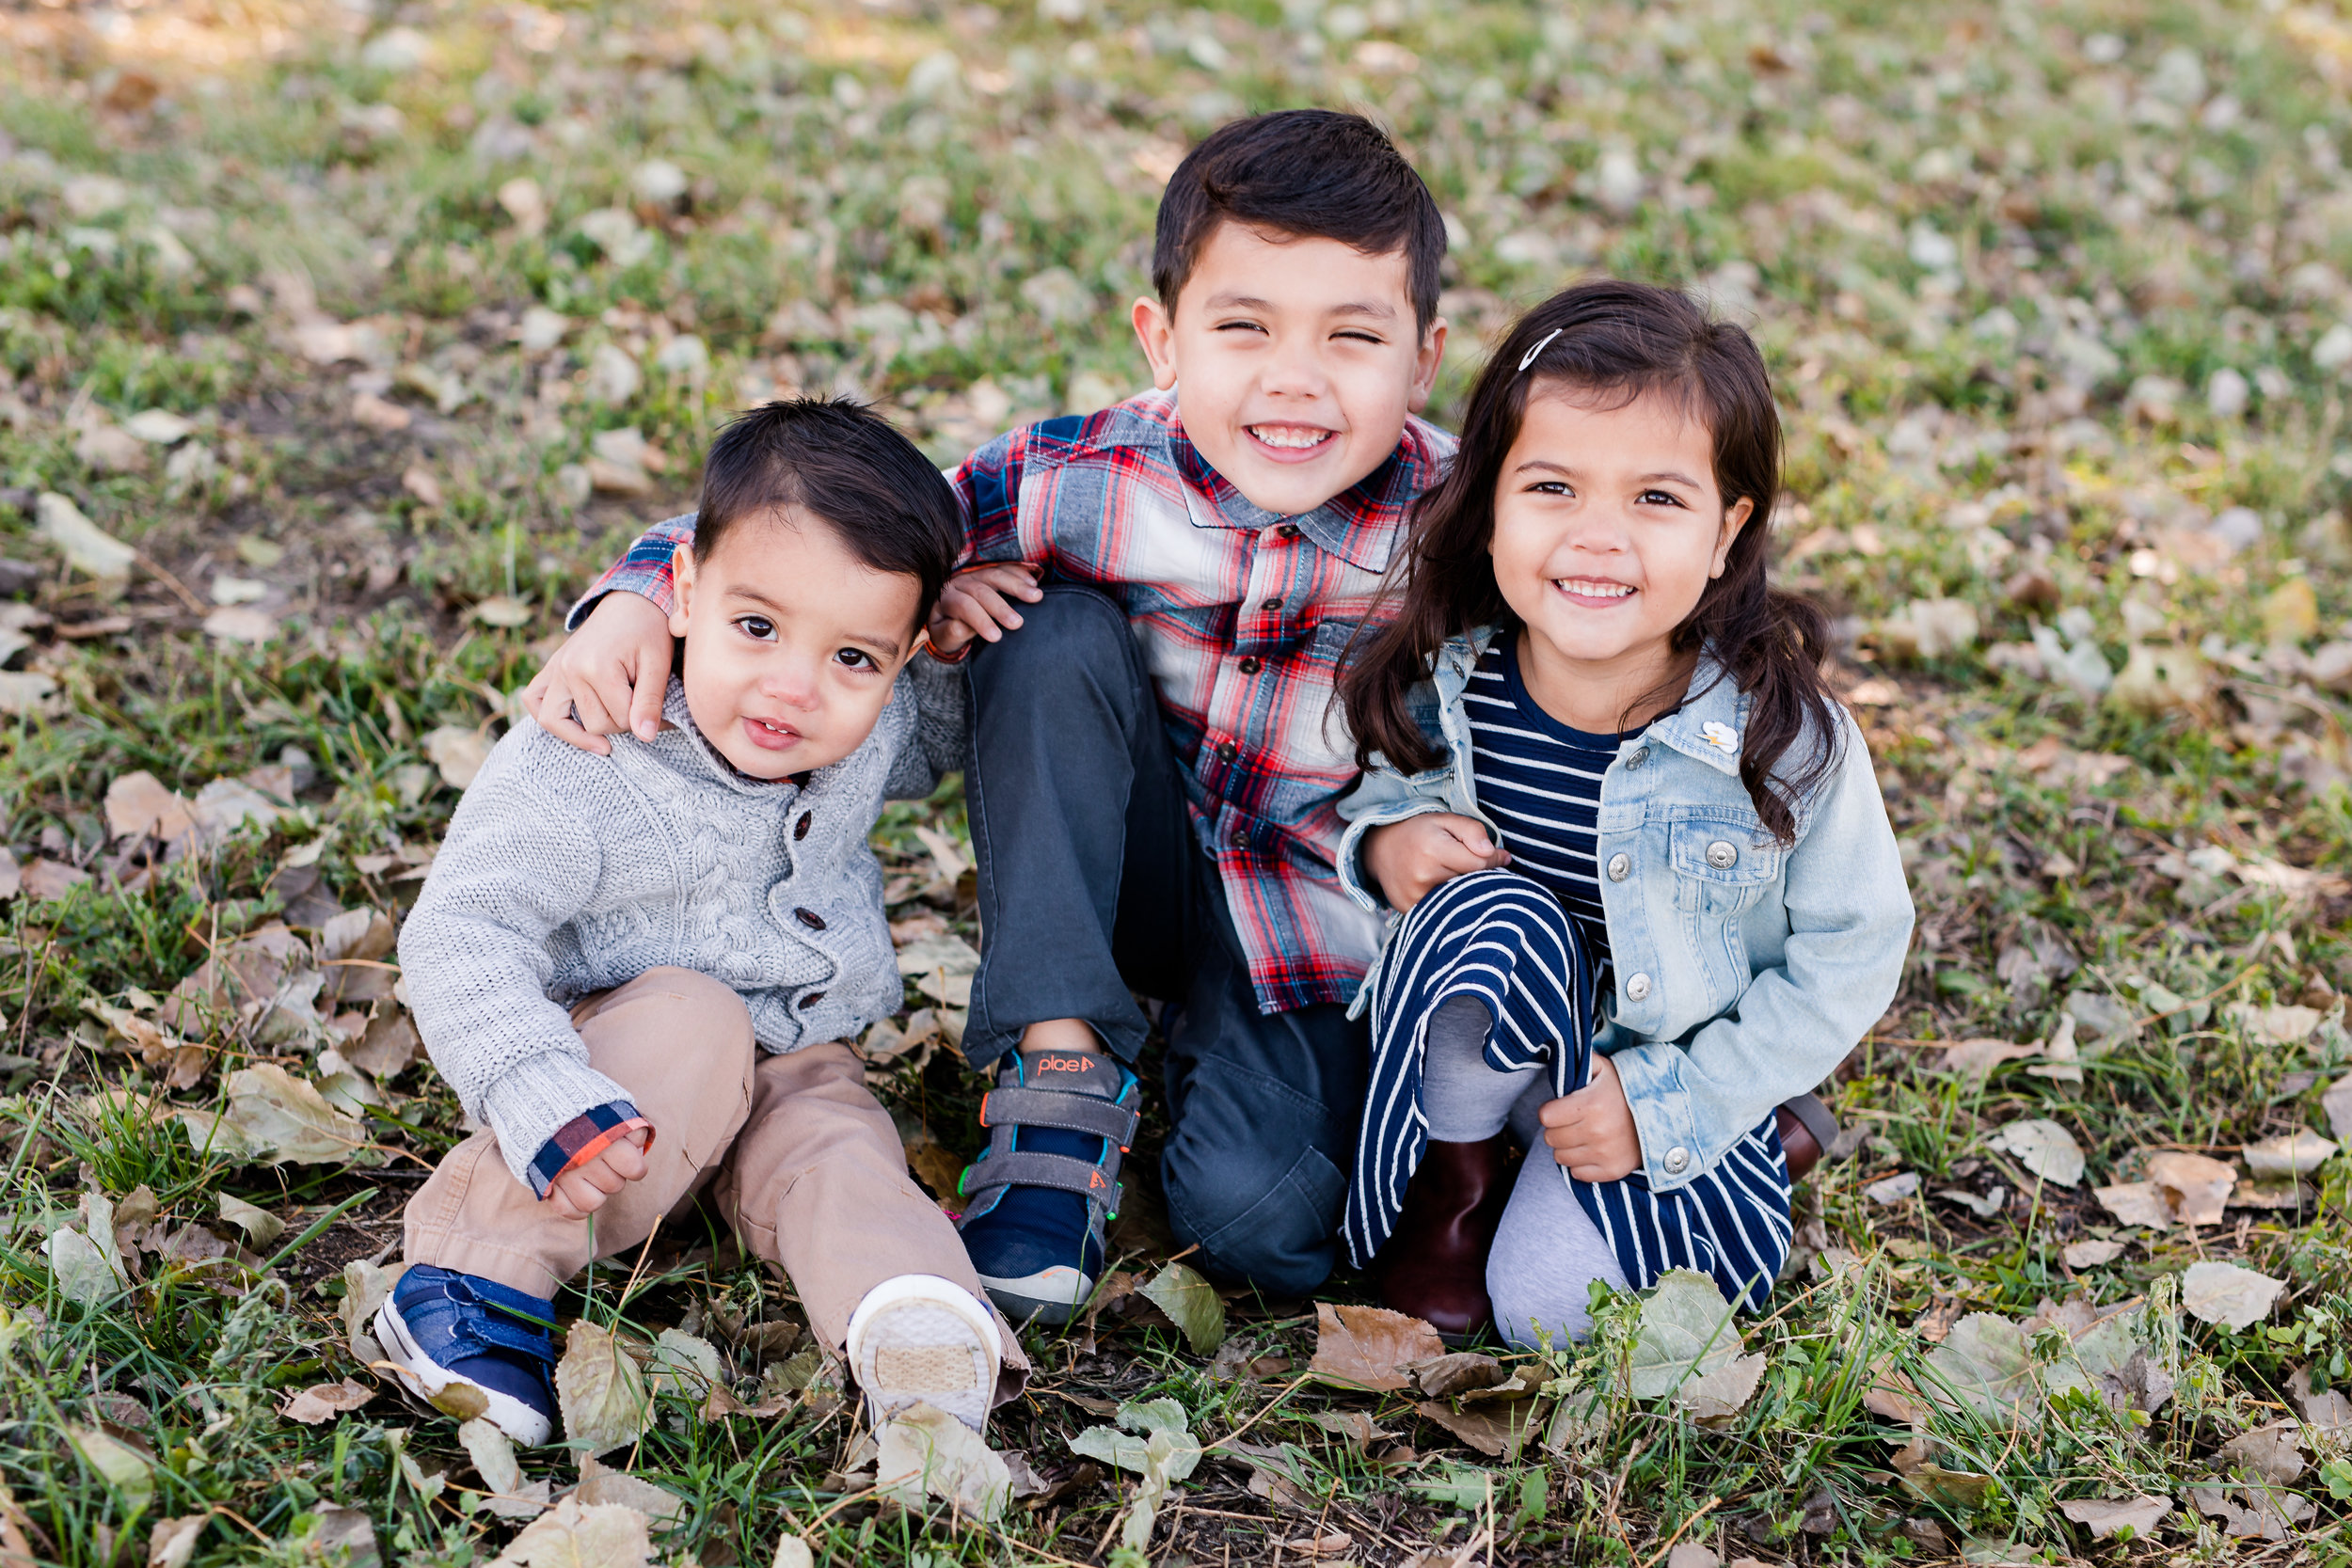 Kids Only + Digital Images - Includes appx 20 min of photography timeJust the kids (excludes newborn)Perfect for 1 Outfit & 1 Location10+ digital images with print release$300